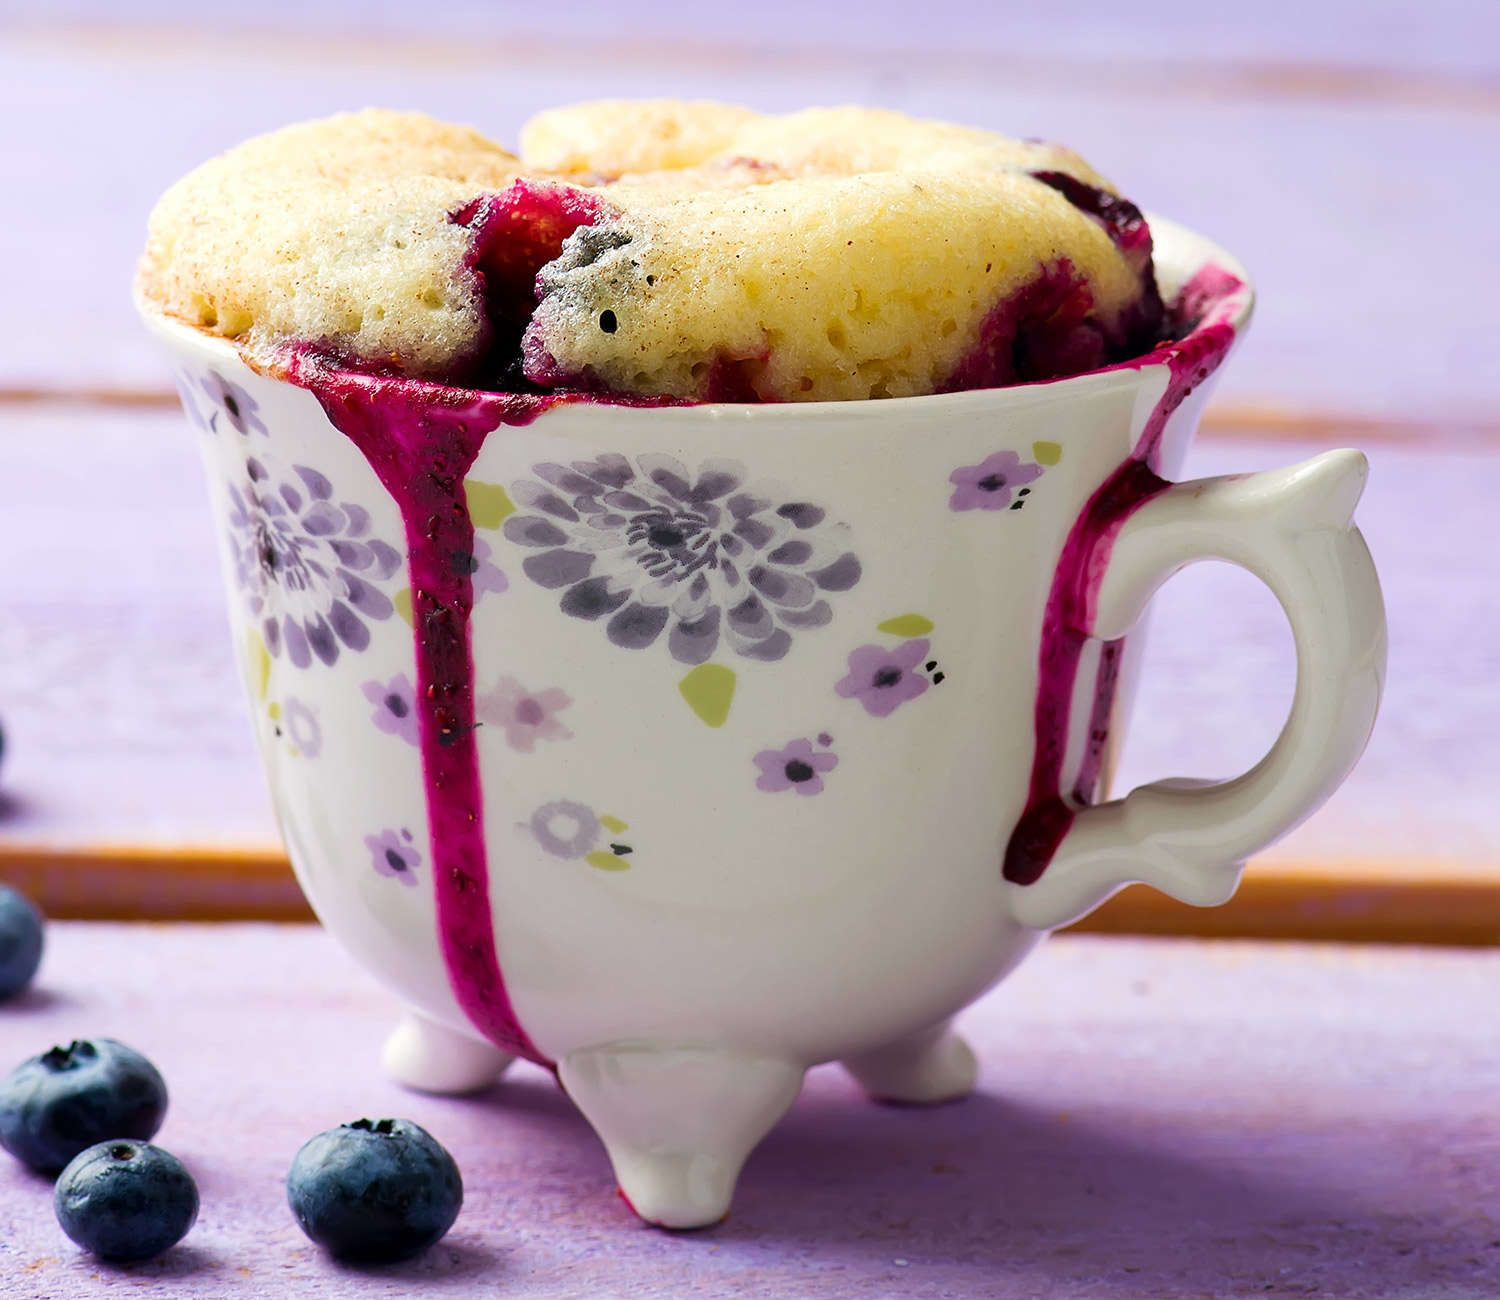 11 Microwave Breakfasts You Can Make in One Mug Protein